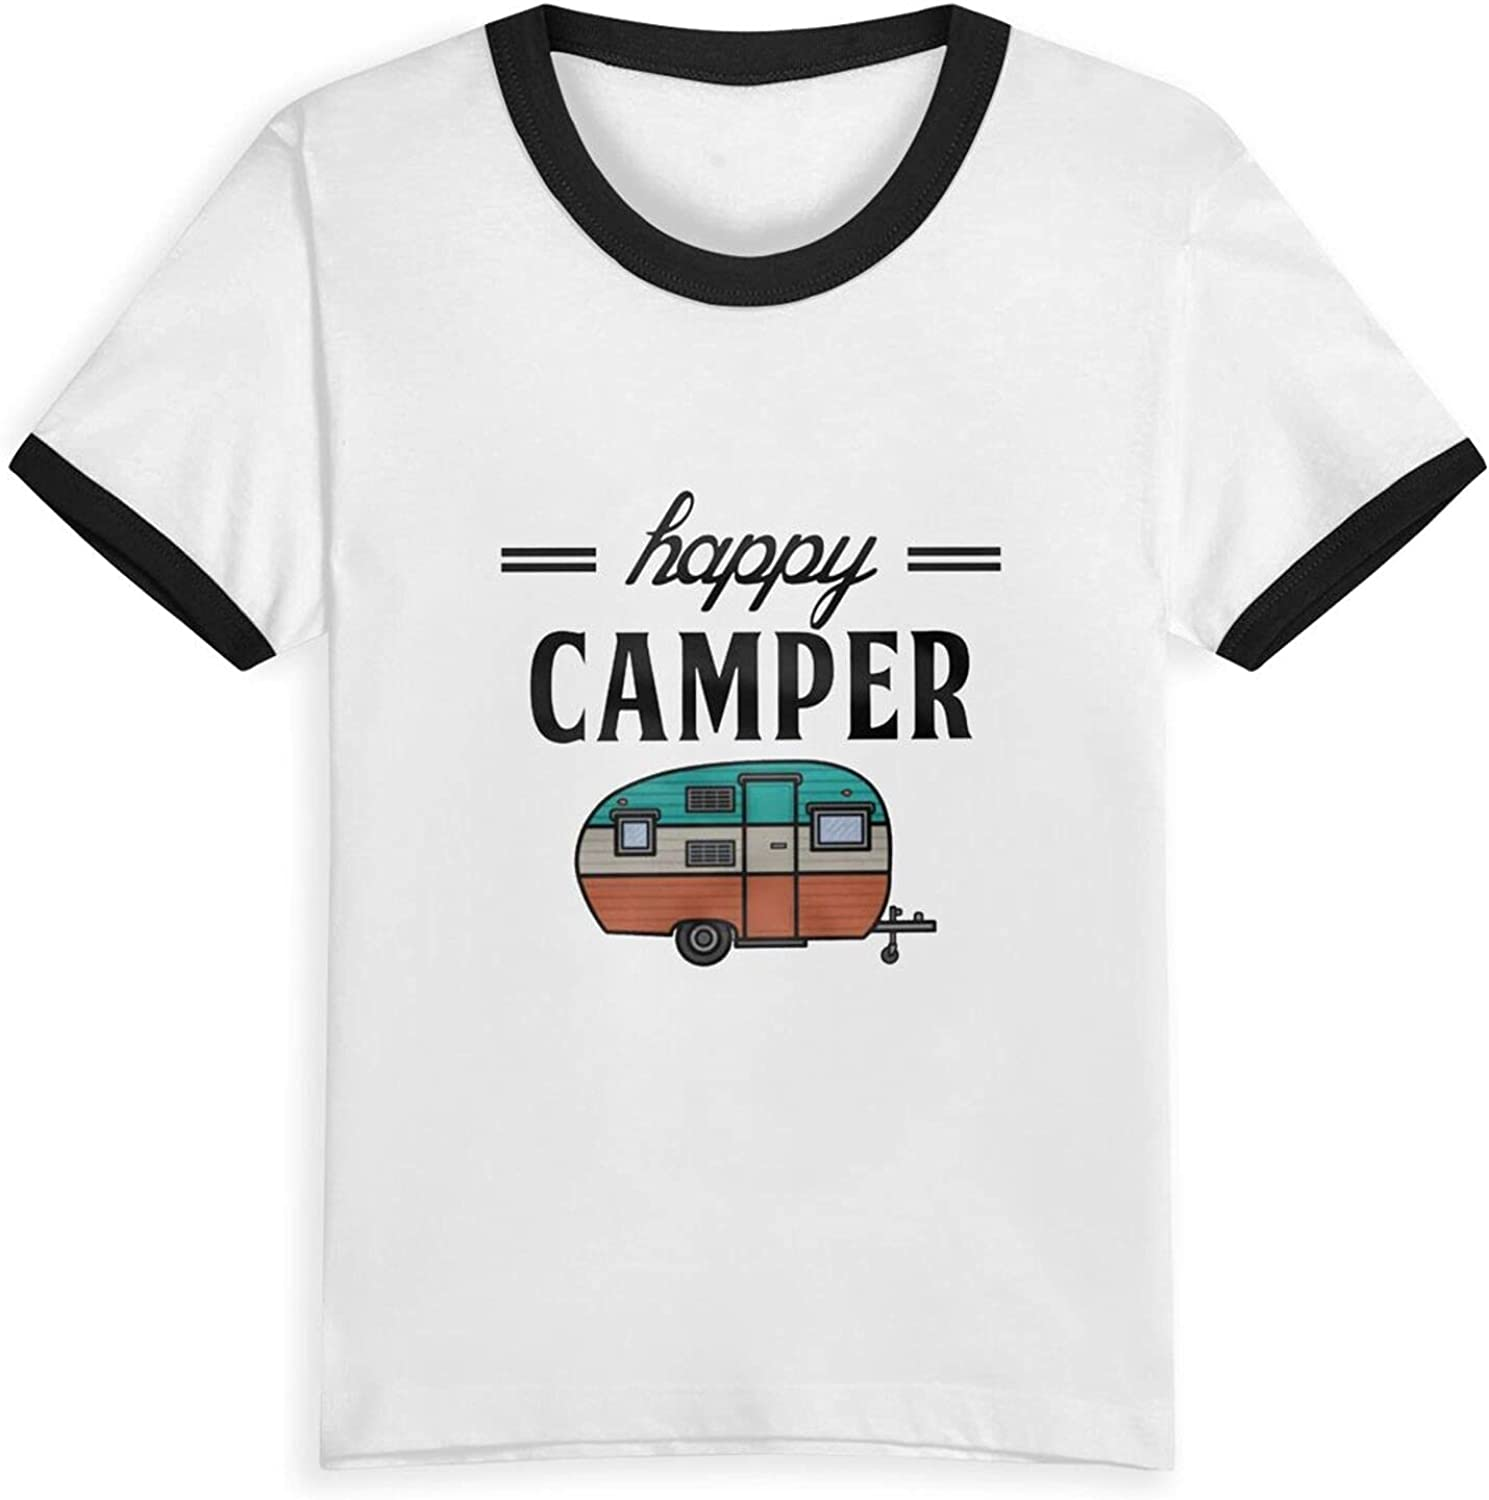 Happy Camper Camping Outdoor Boys Girls Shirts Funny Kids Short Sleeve T-Shirt Tops Tees 2-5 Years